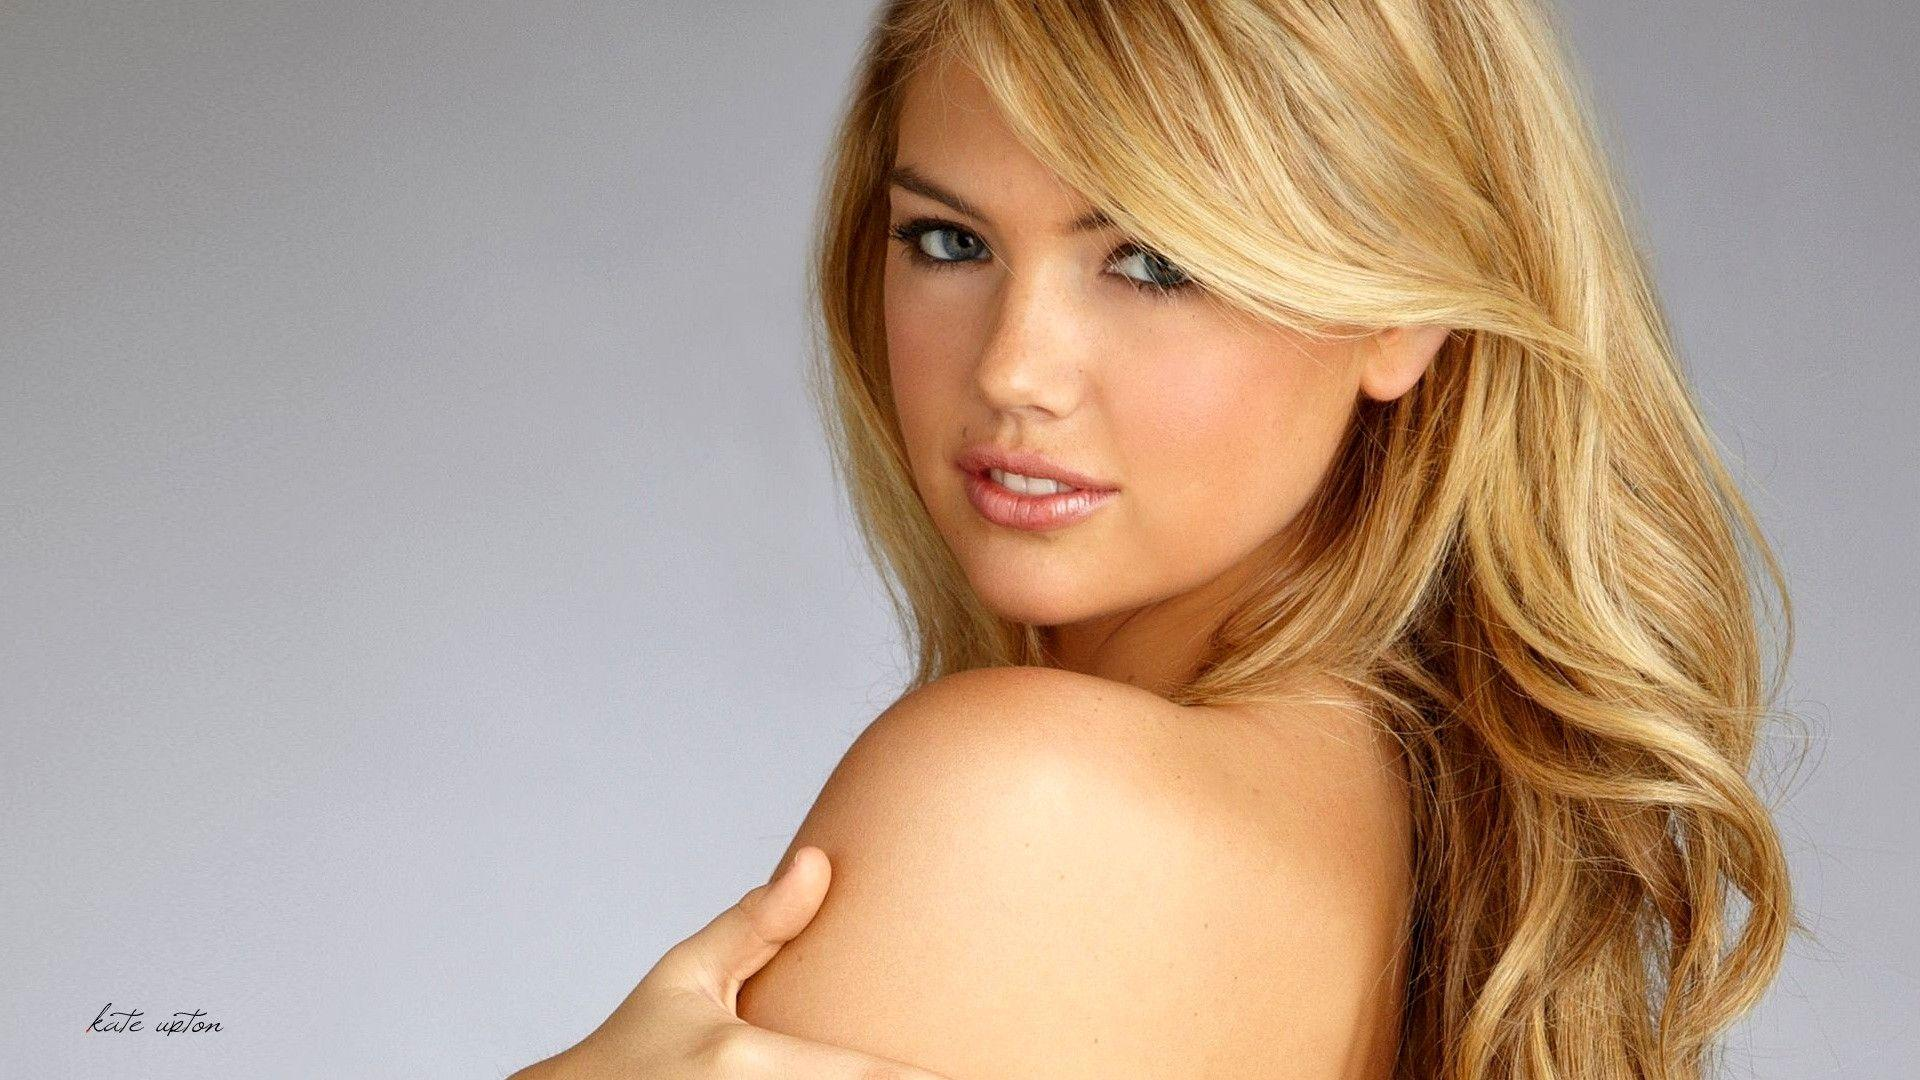 kate upton wallpapers with - photo #8